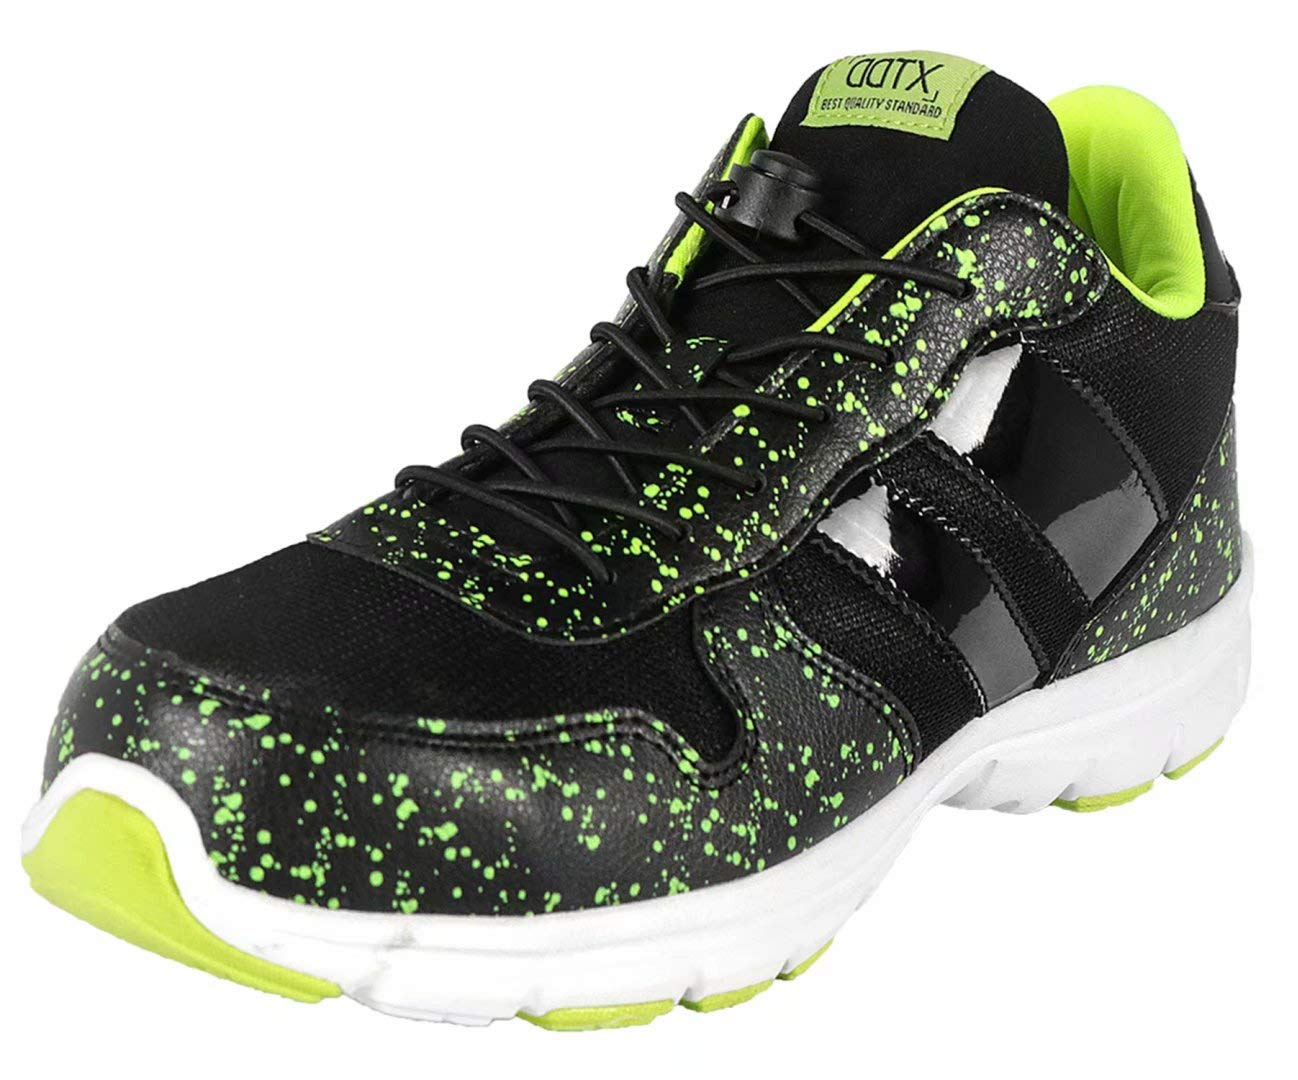 DDTX Spring and Summer Lightweight Safety Sneakers Mens' Steel Toe Work Shoes Black (11.5) by DDTX (Image #2)